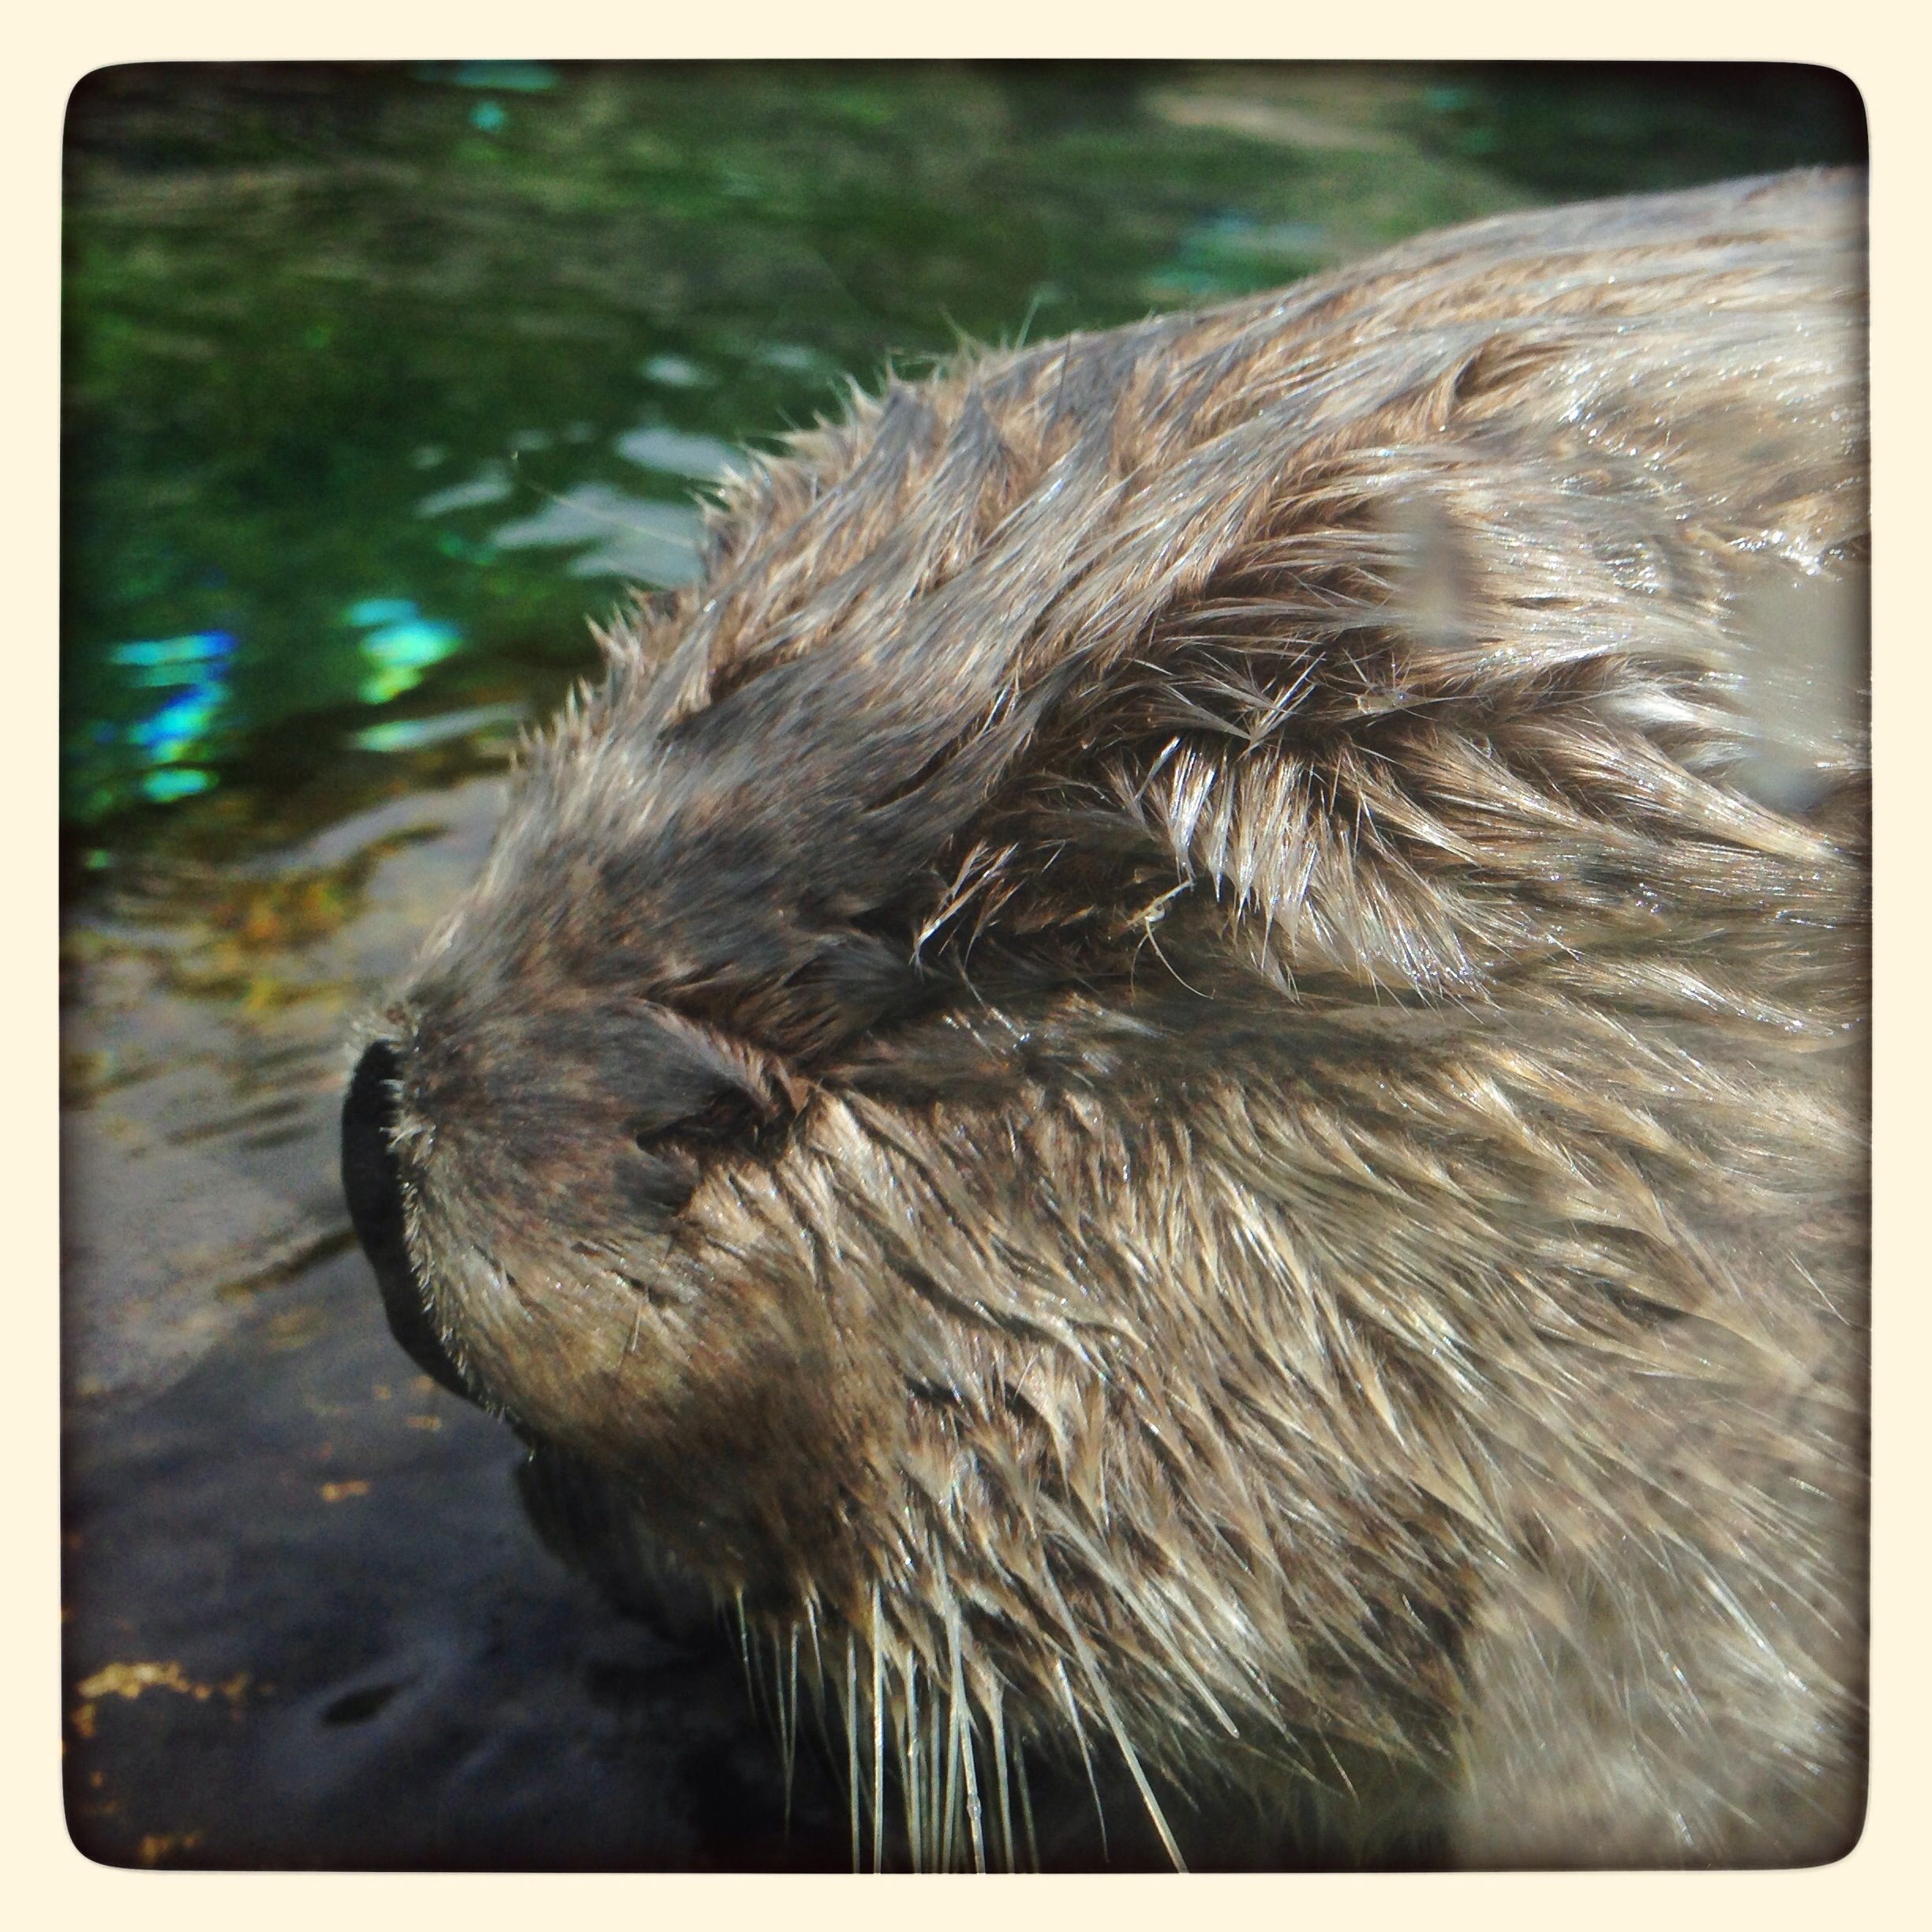 Closeup of Sleeping Sea Otter